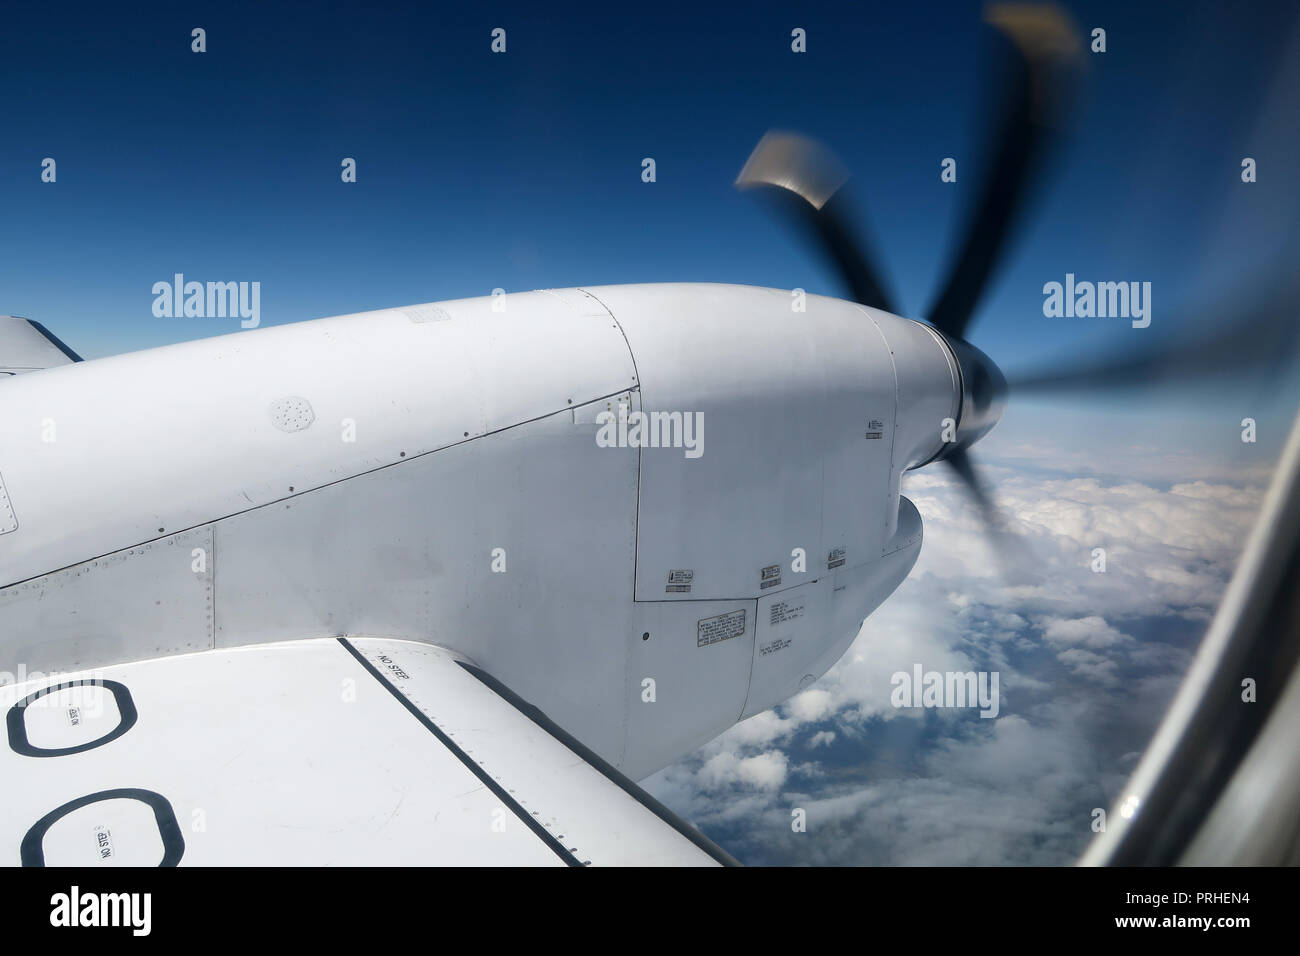 Turboprop engine on SAAB 2000 aircraft from window - Stock Image